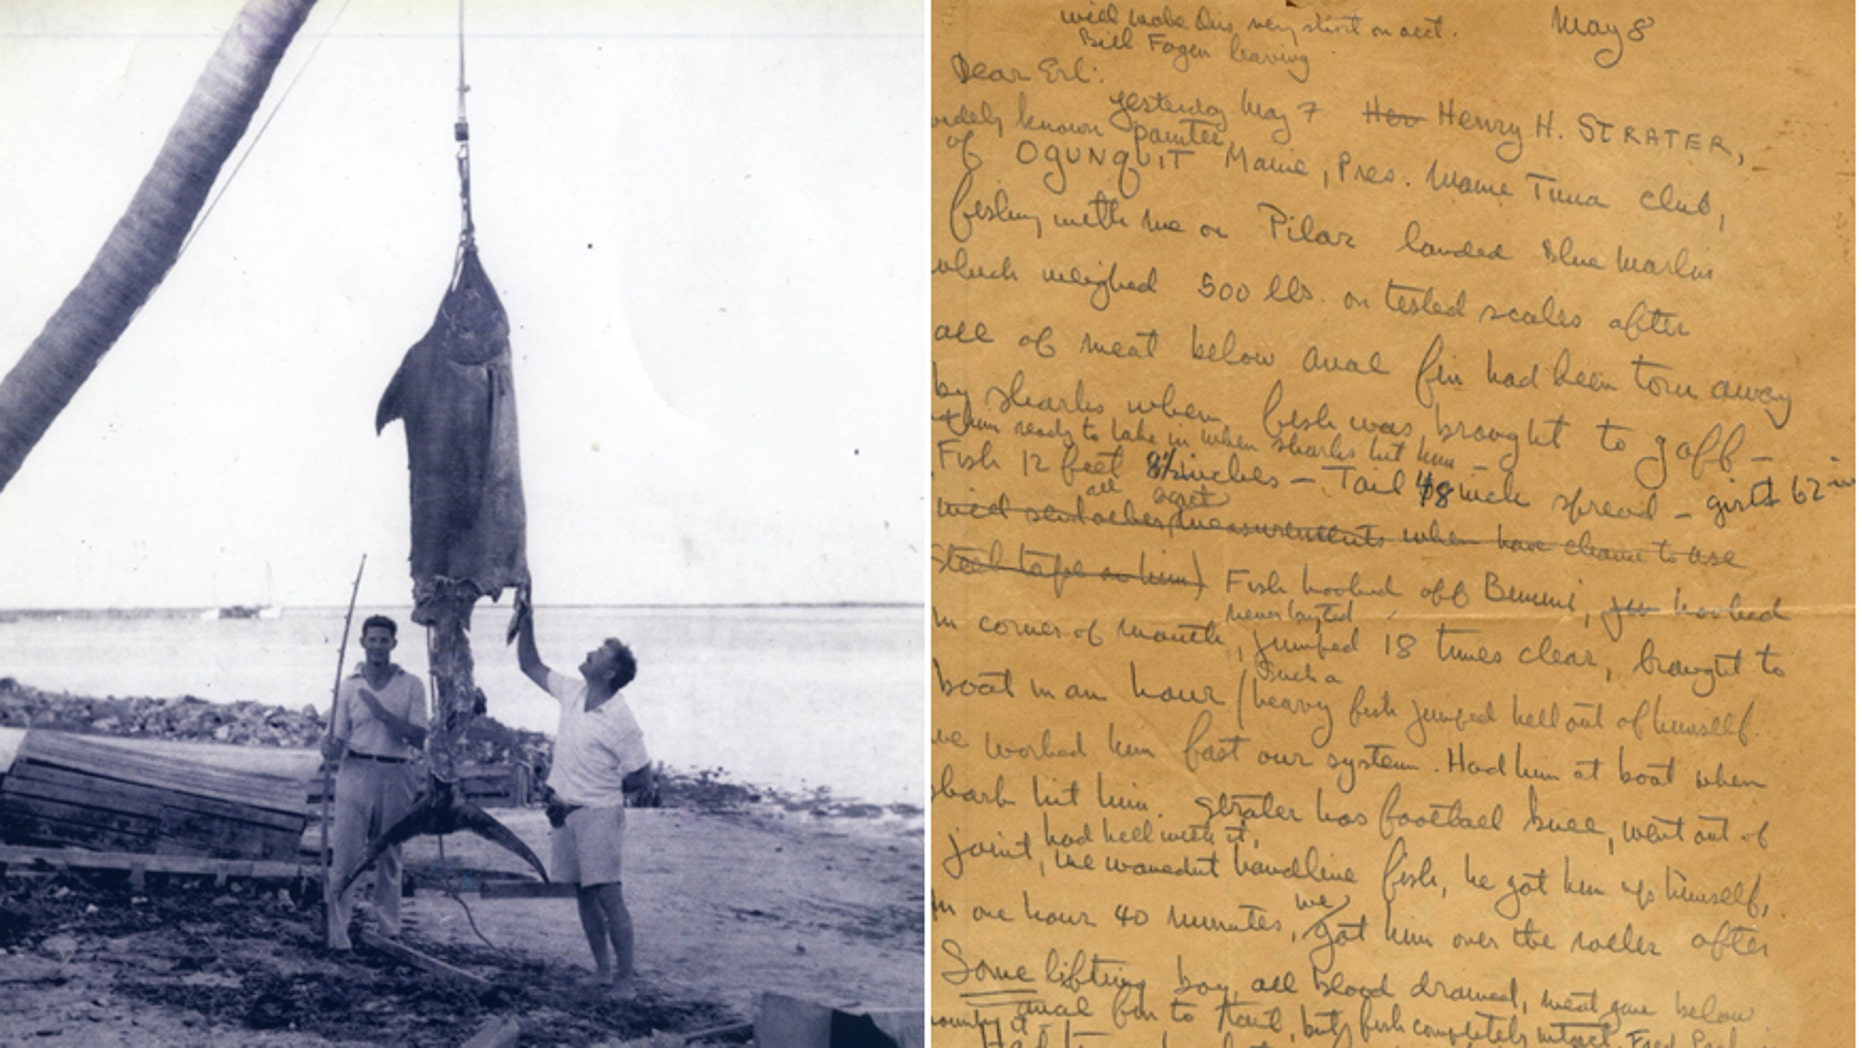 The letter and photo documenting the fishing trip that landed a 500-pound Atlantic Blue Marlin. Hemingway is in the right of the photo (Nate D. Sanders Auctions)